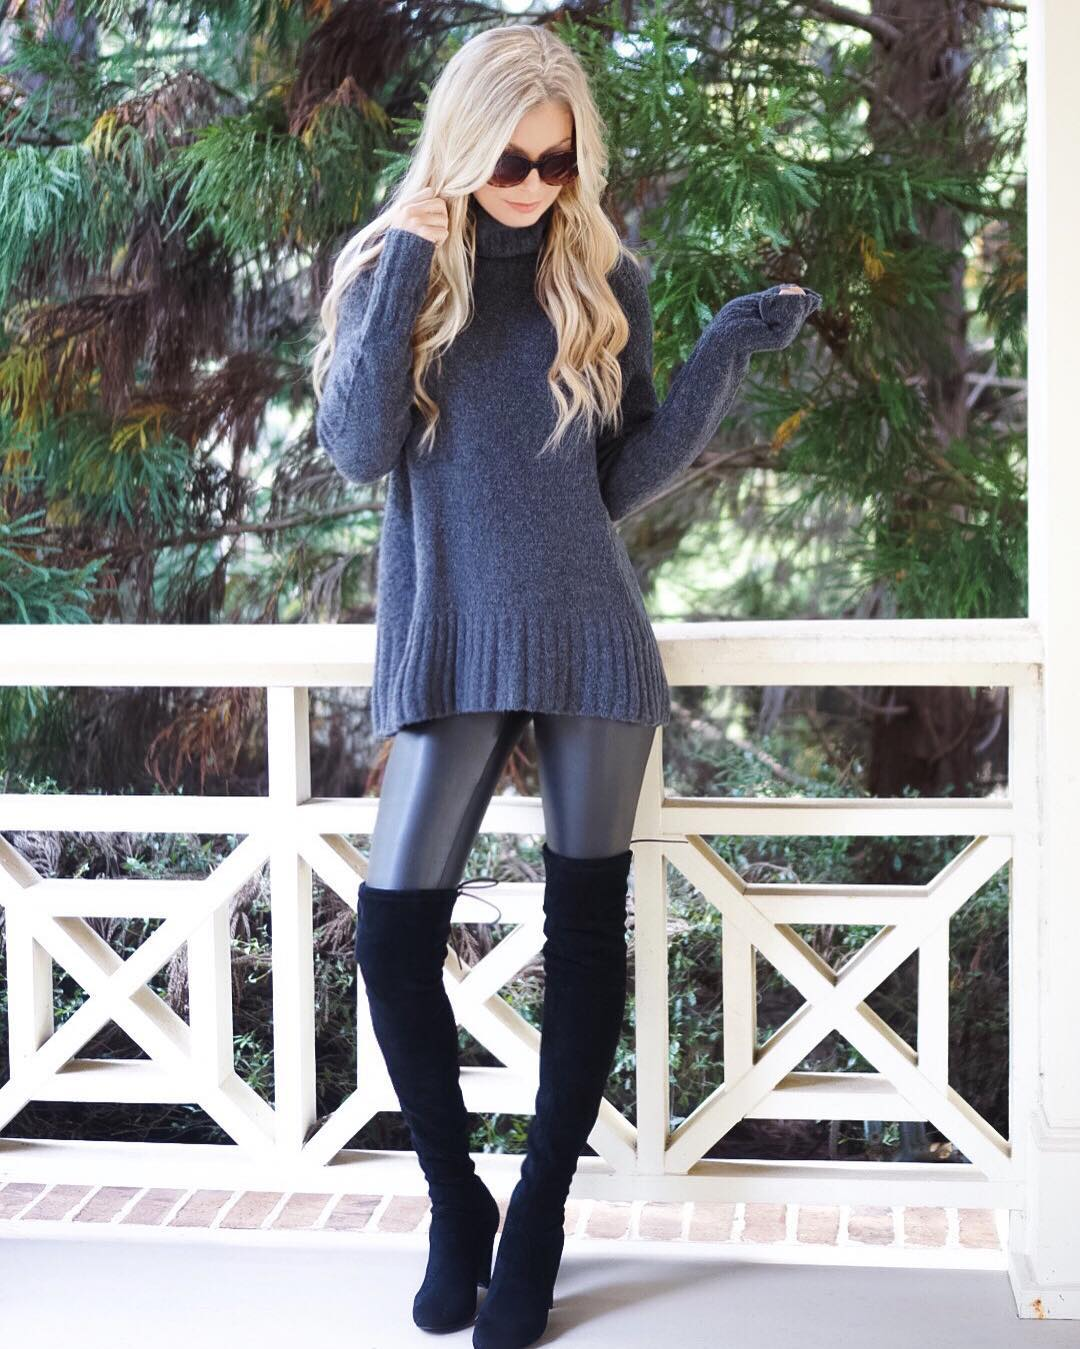 Take my word for it...you need this sweater for this season slash life in general! K? {it's the softest, coziest thing ever!} http://liketk.it/2psyn #sweaterweather #ootd #wiw #liketkitunder100 #liketkitunder100 #fall #fallfashion